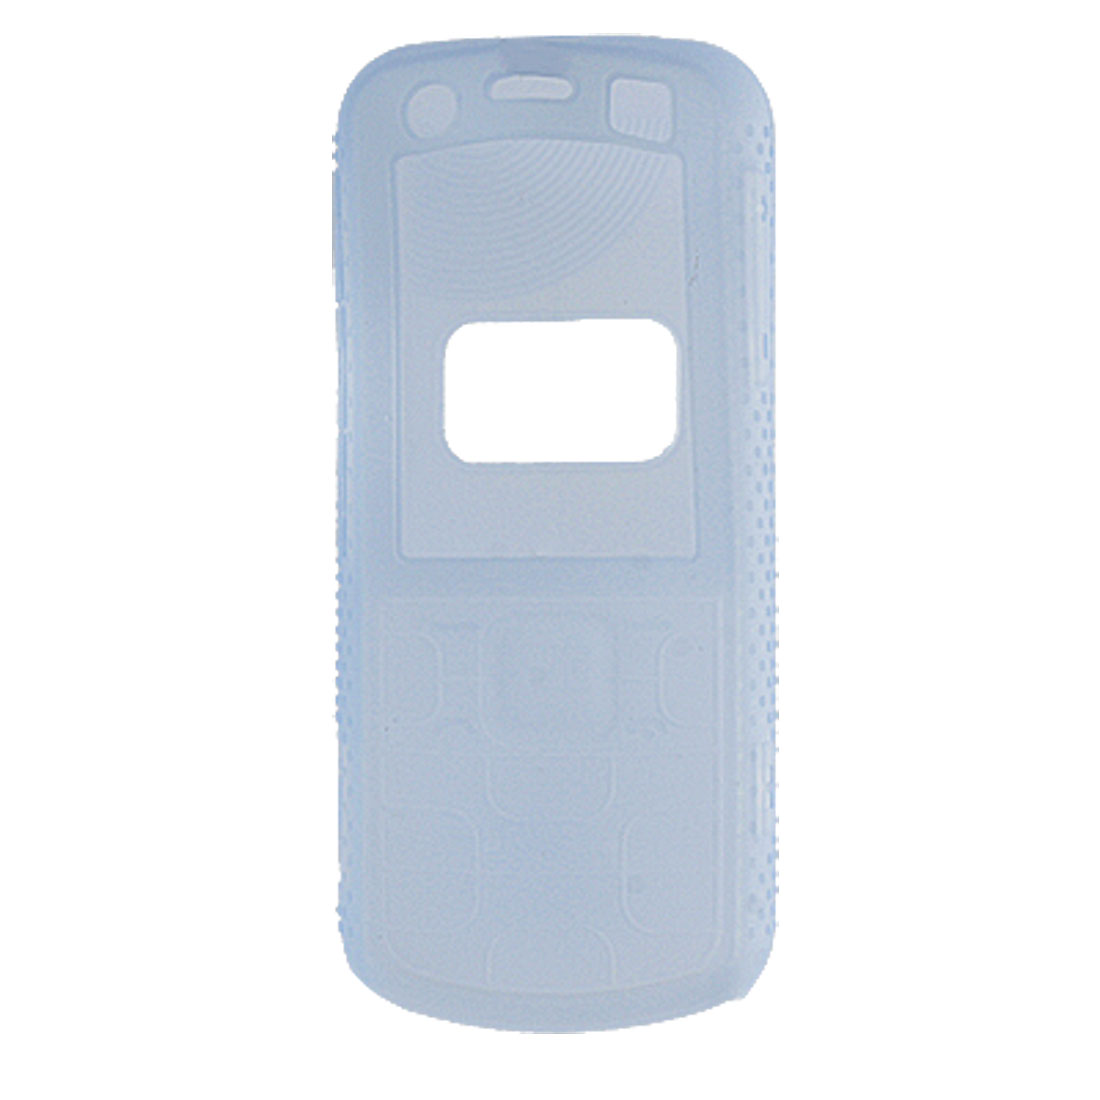 Textured Silicone Skin Case Soft Cover Blue for Nokia 5320